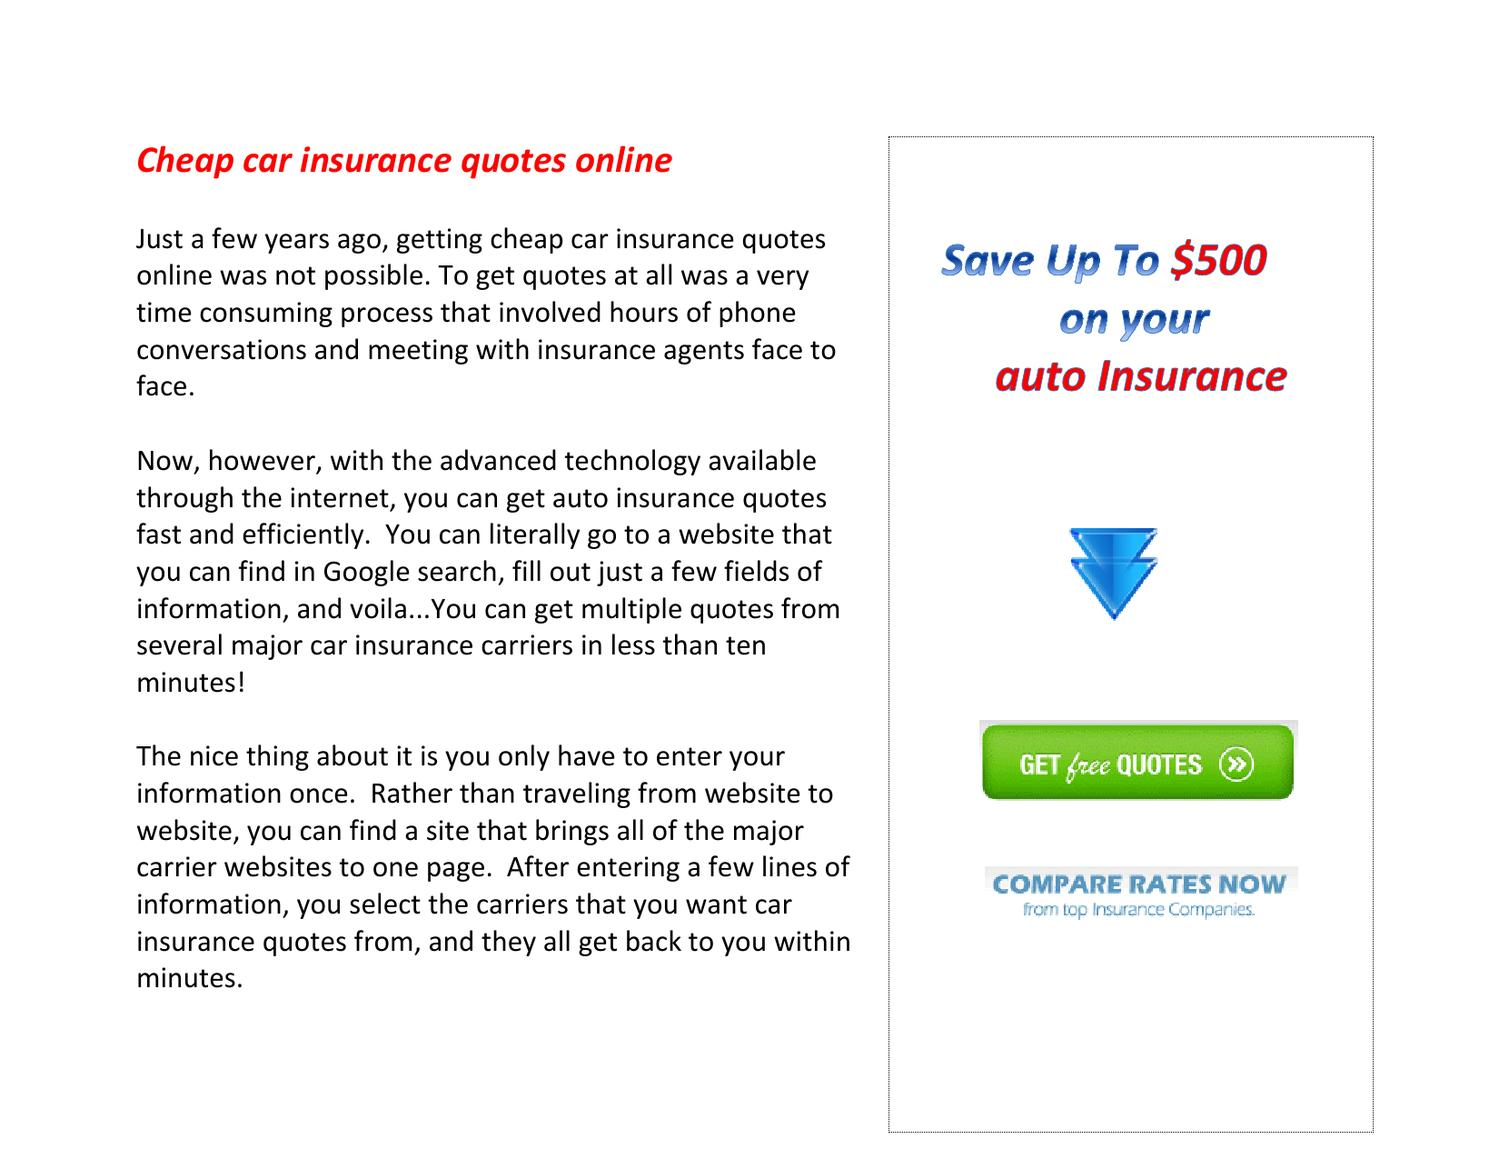 Cheap Car Insurance Quotes Online By Heather Cobb Issuu